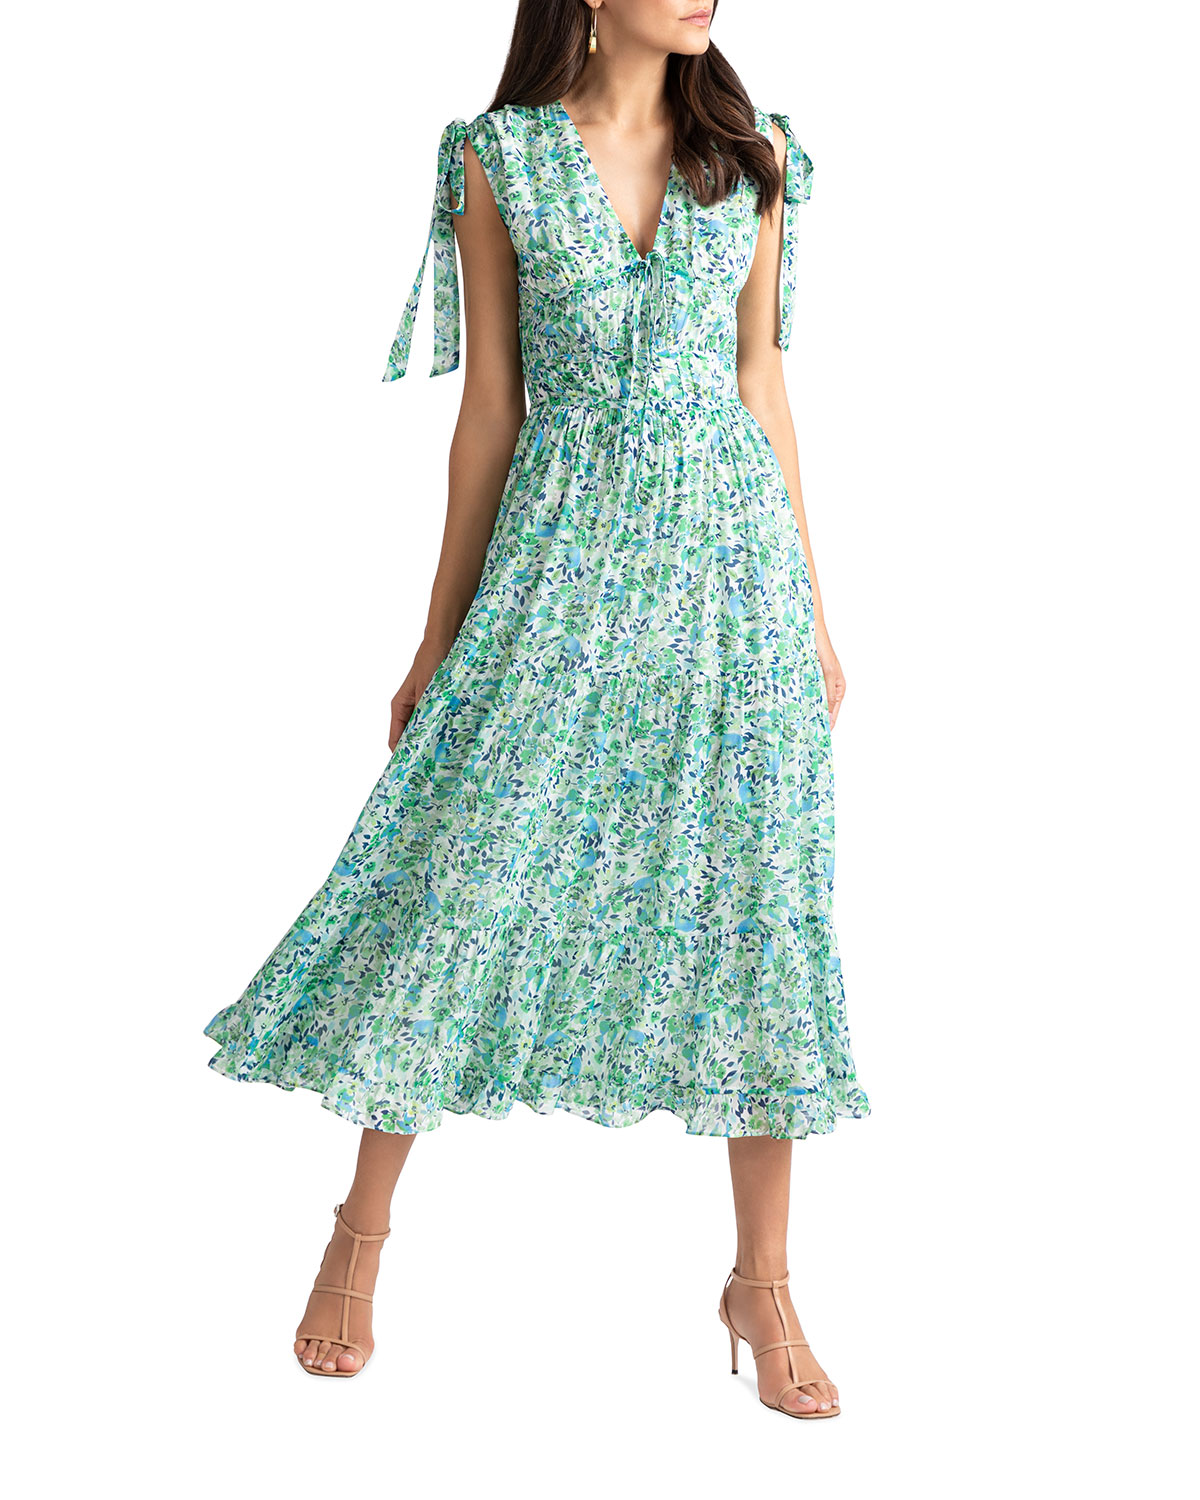 Shoshanna HELENA MISTY FLORAL MIDI DRESS